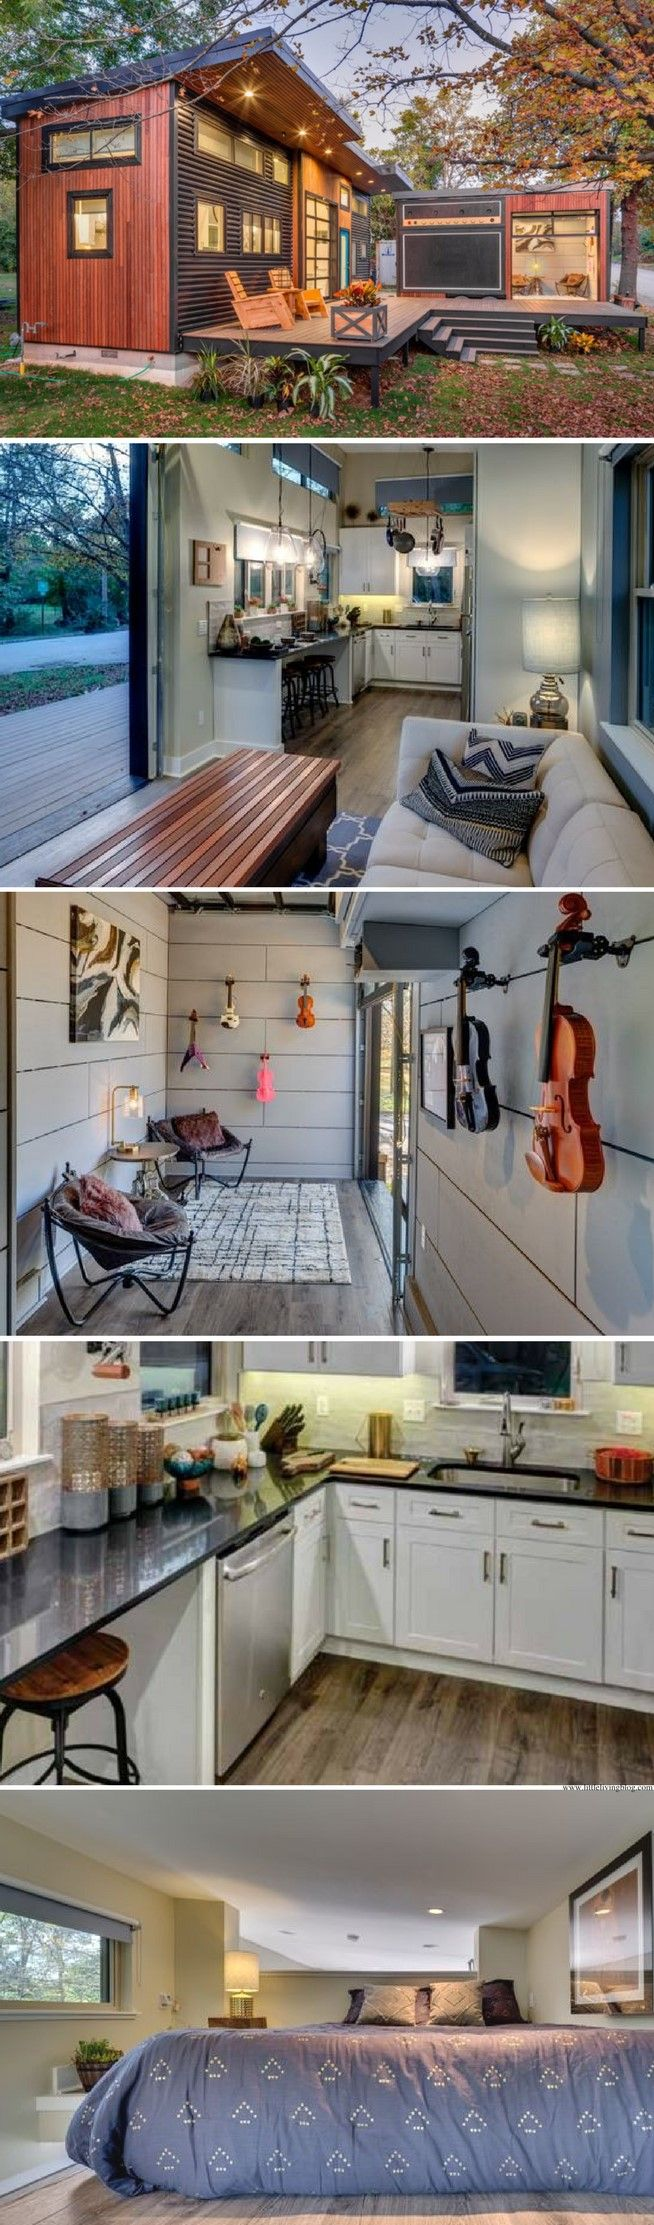 Container House - The Amplified Tiny House (520 sq ft) (Favorite Spaces) Who Else Wants Simple Step-By-Step Plans To Design And Build A Container Home From Scratch?